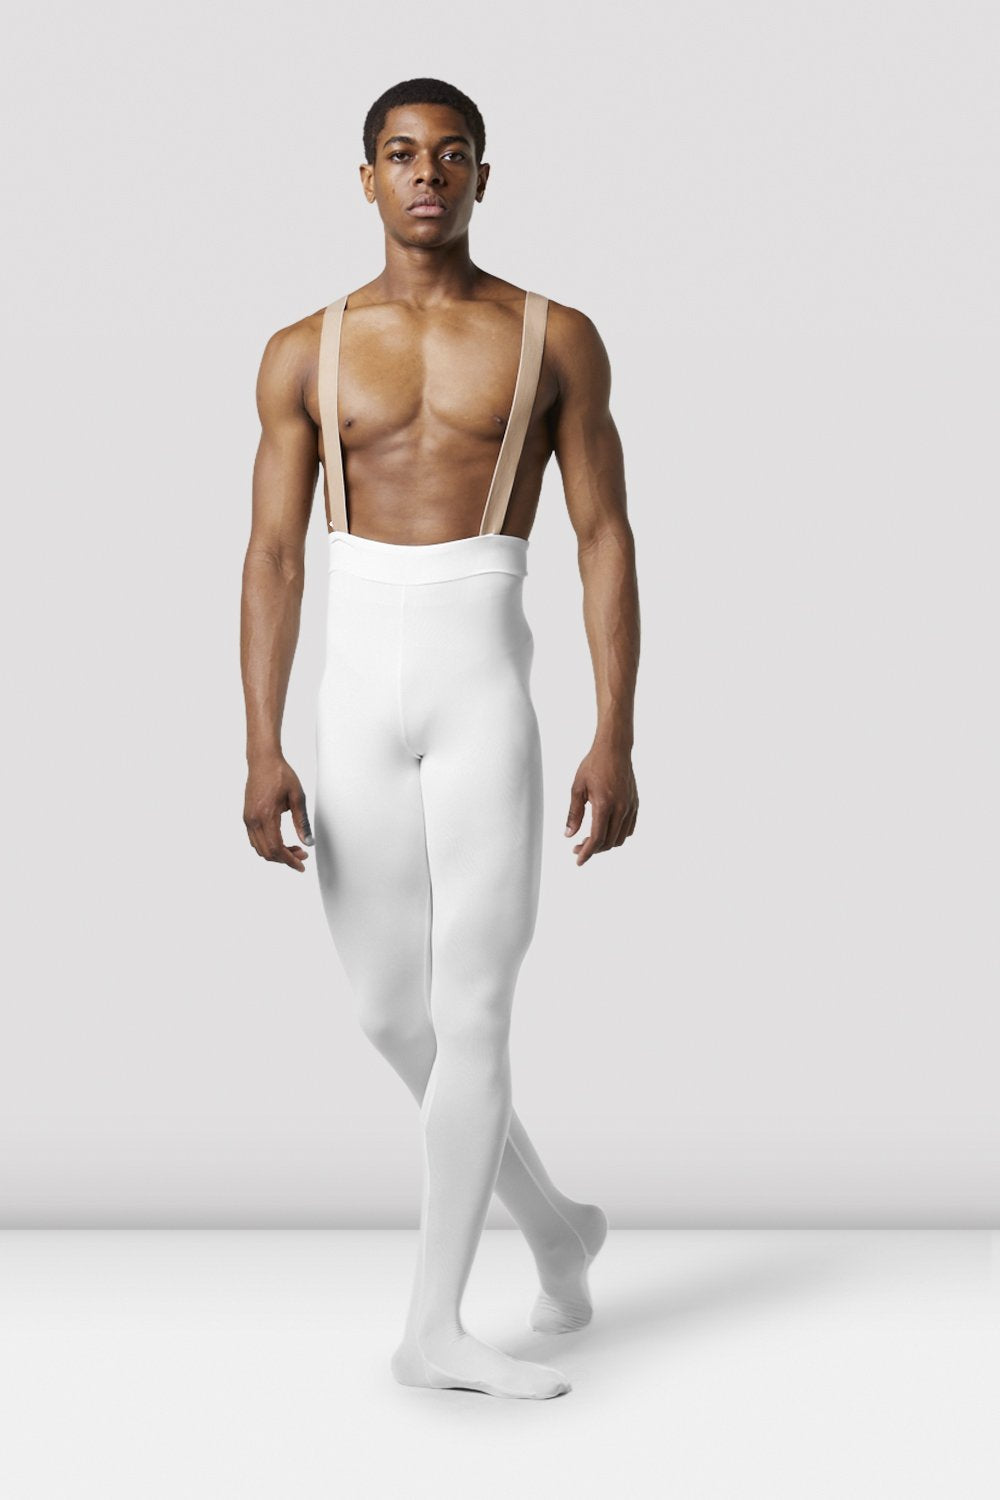 White Bloch Mens Performance Footed Dance Tight on male model in classical position with arms by side